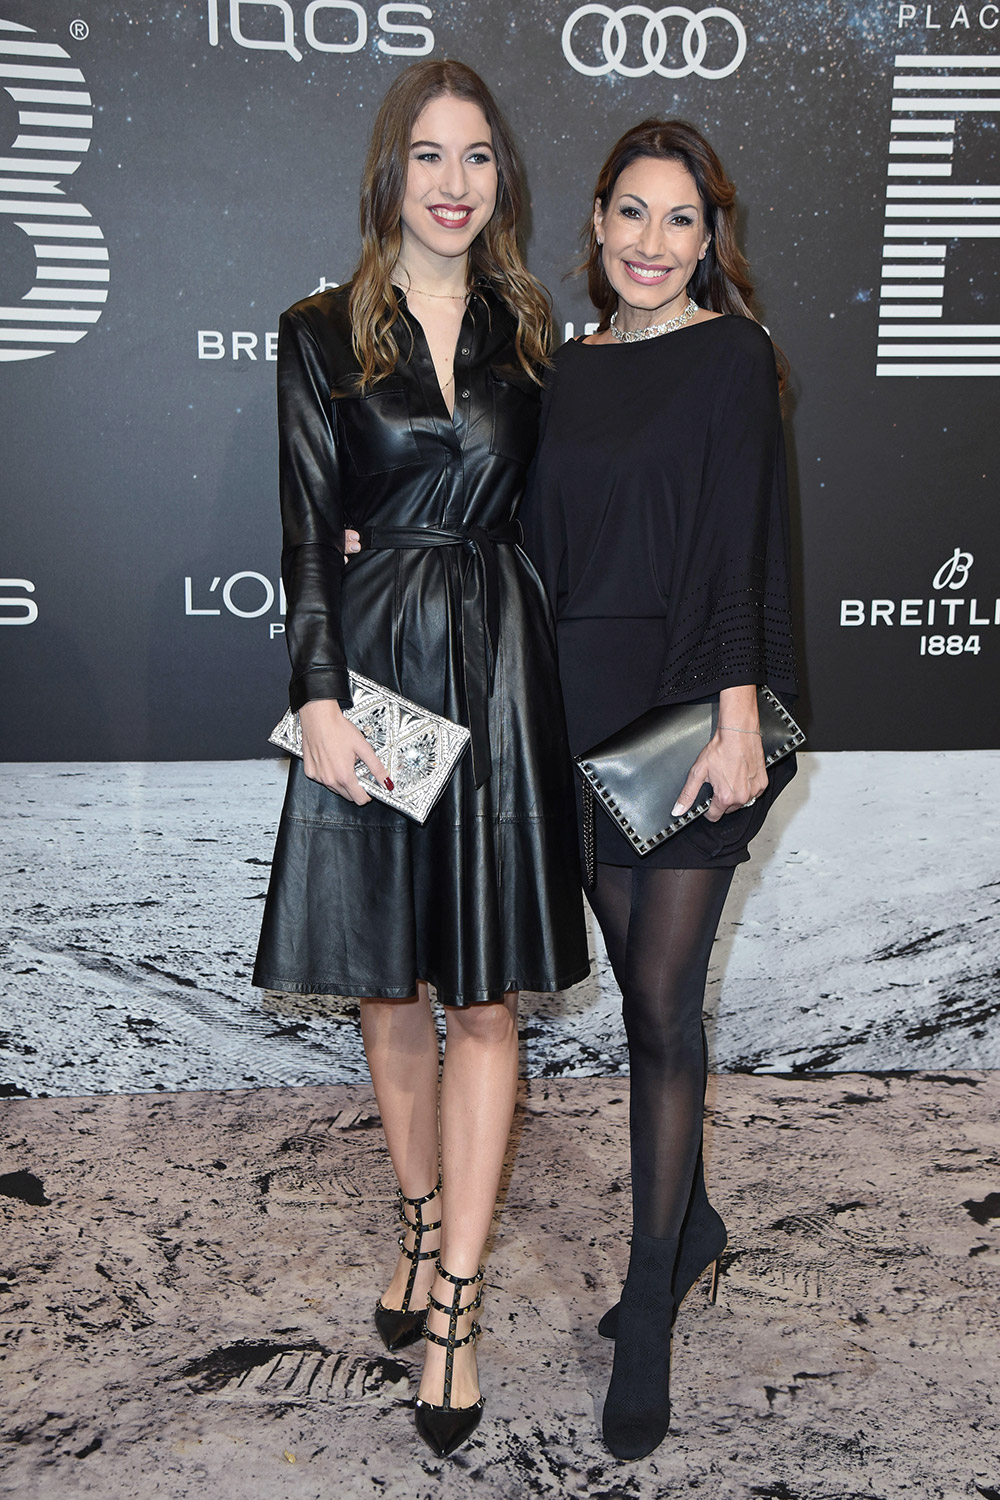 Dagmar Kogel & Alana Siegel attend PLACE TO B Berlinale Party